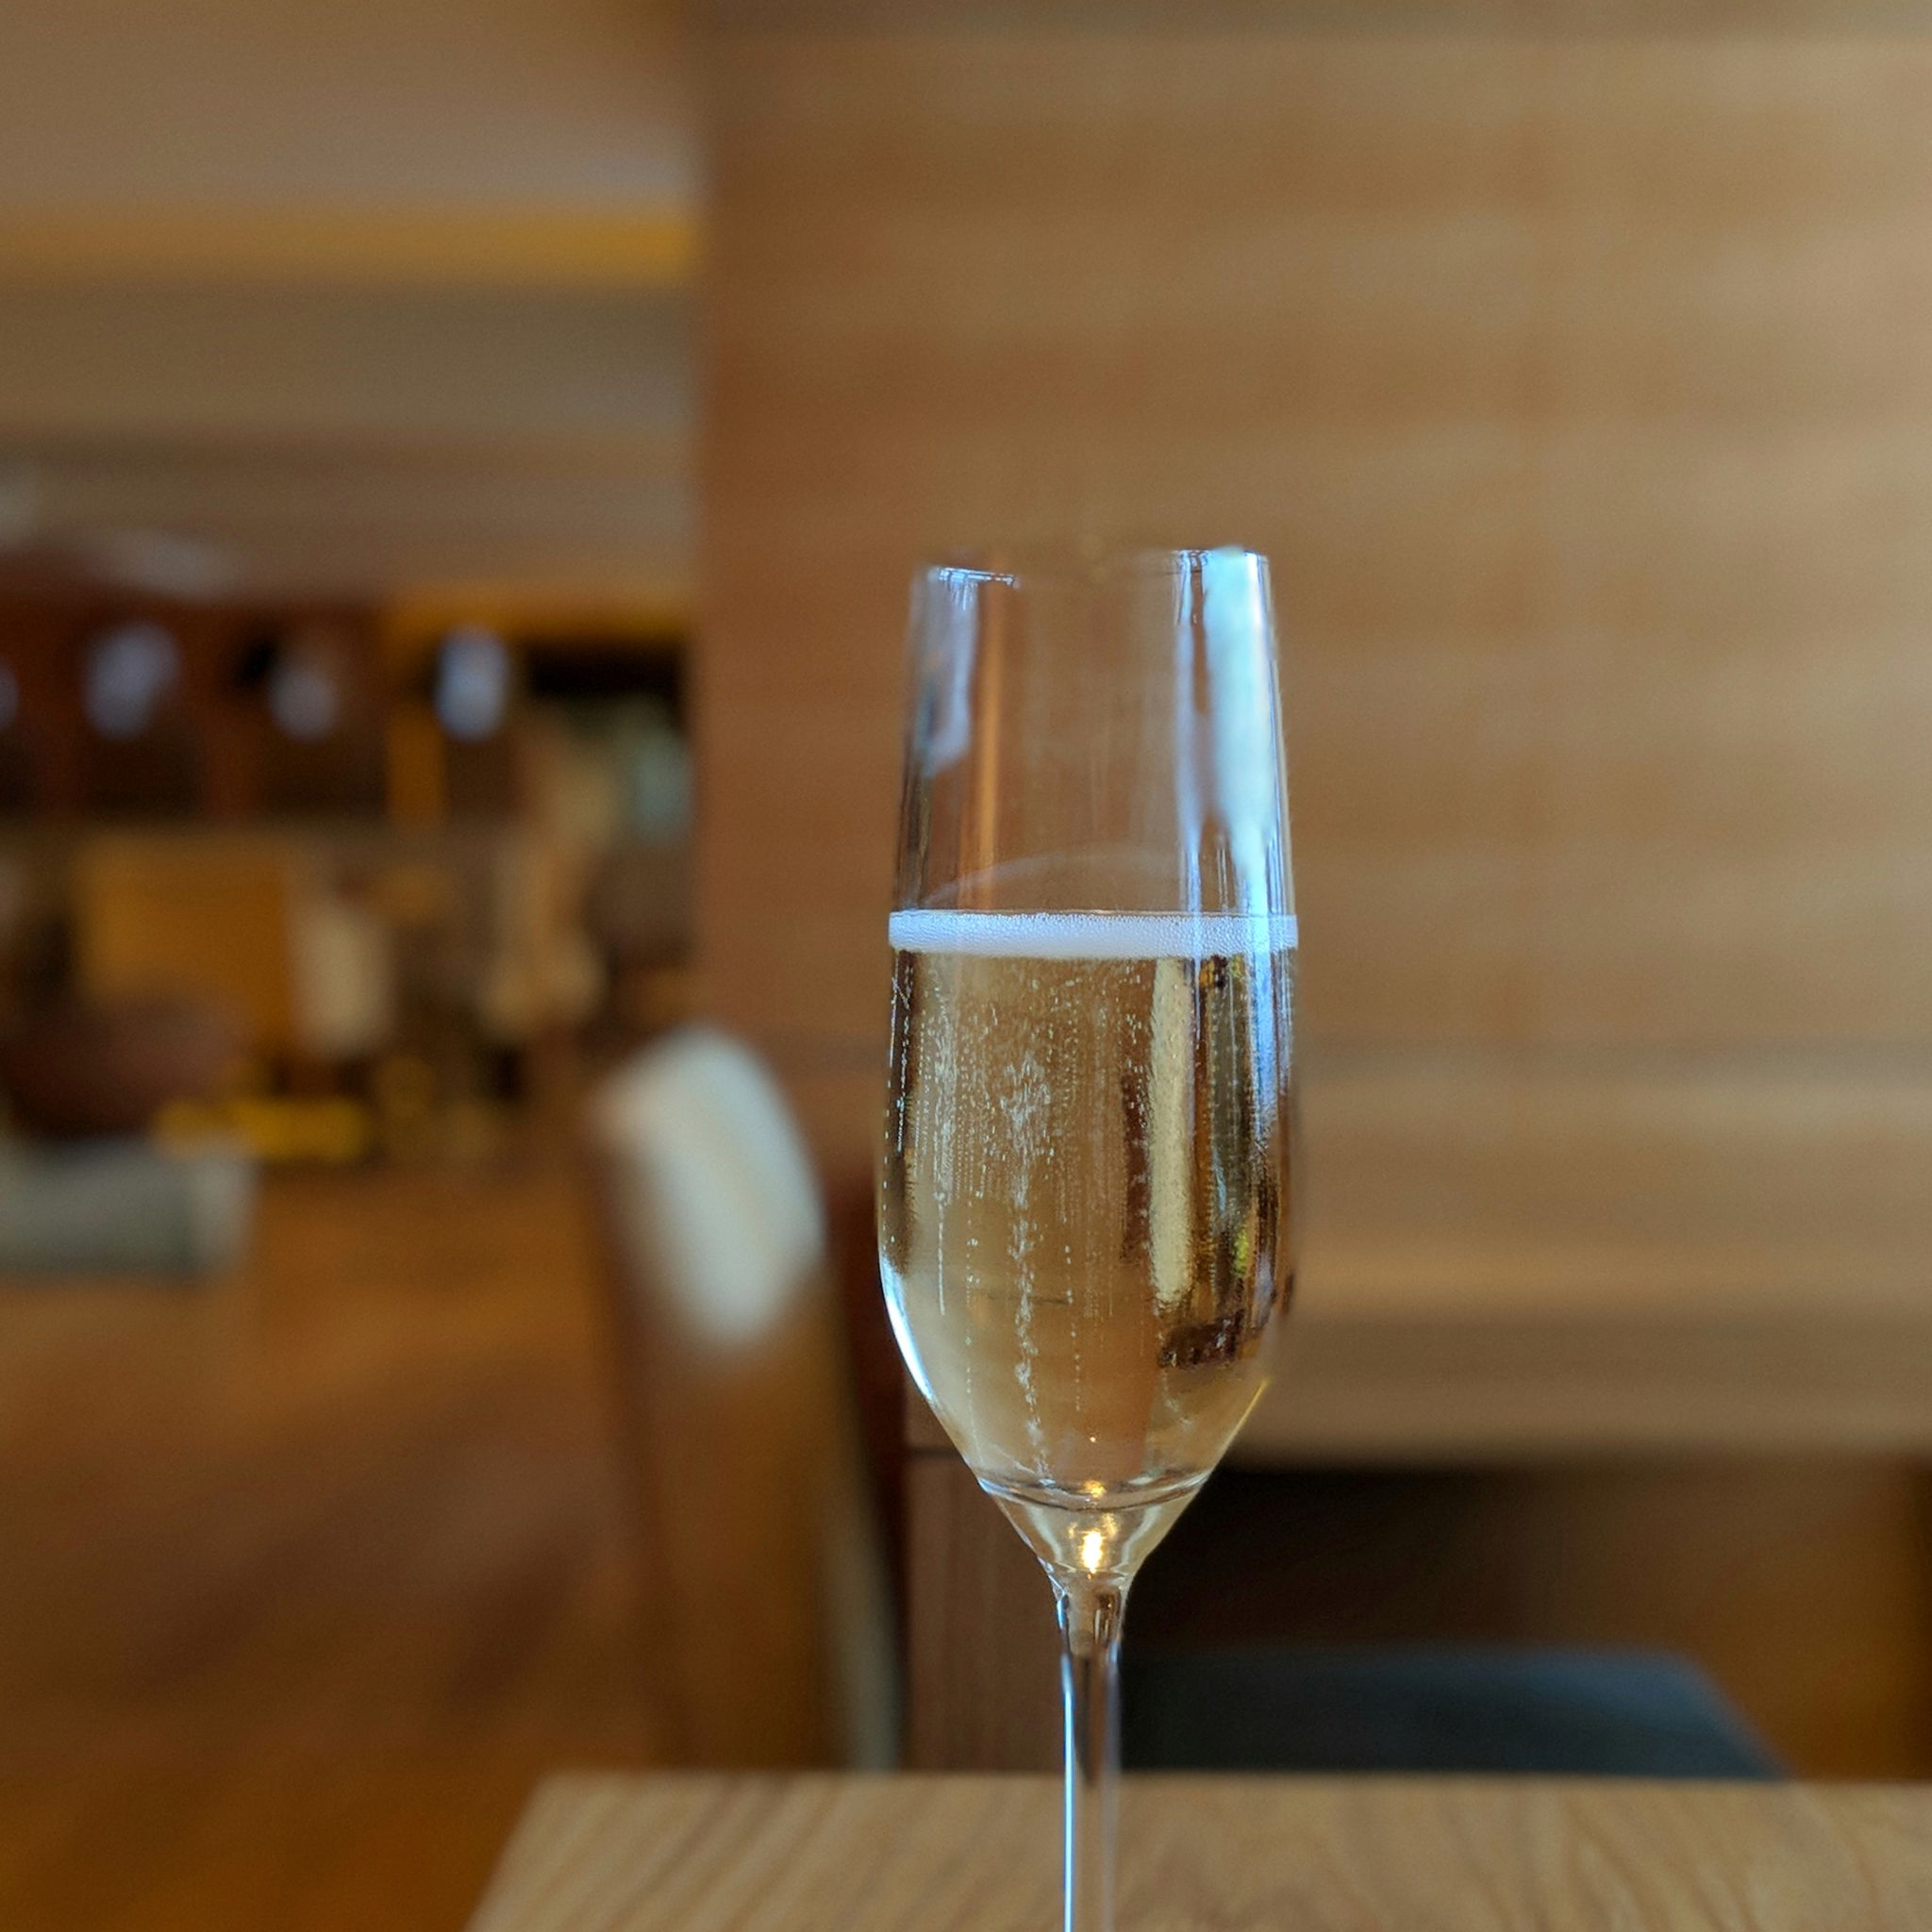 grand hyatt singapore grand club chandon